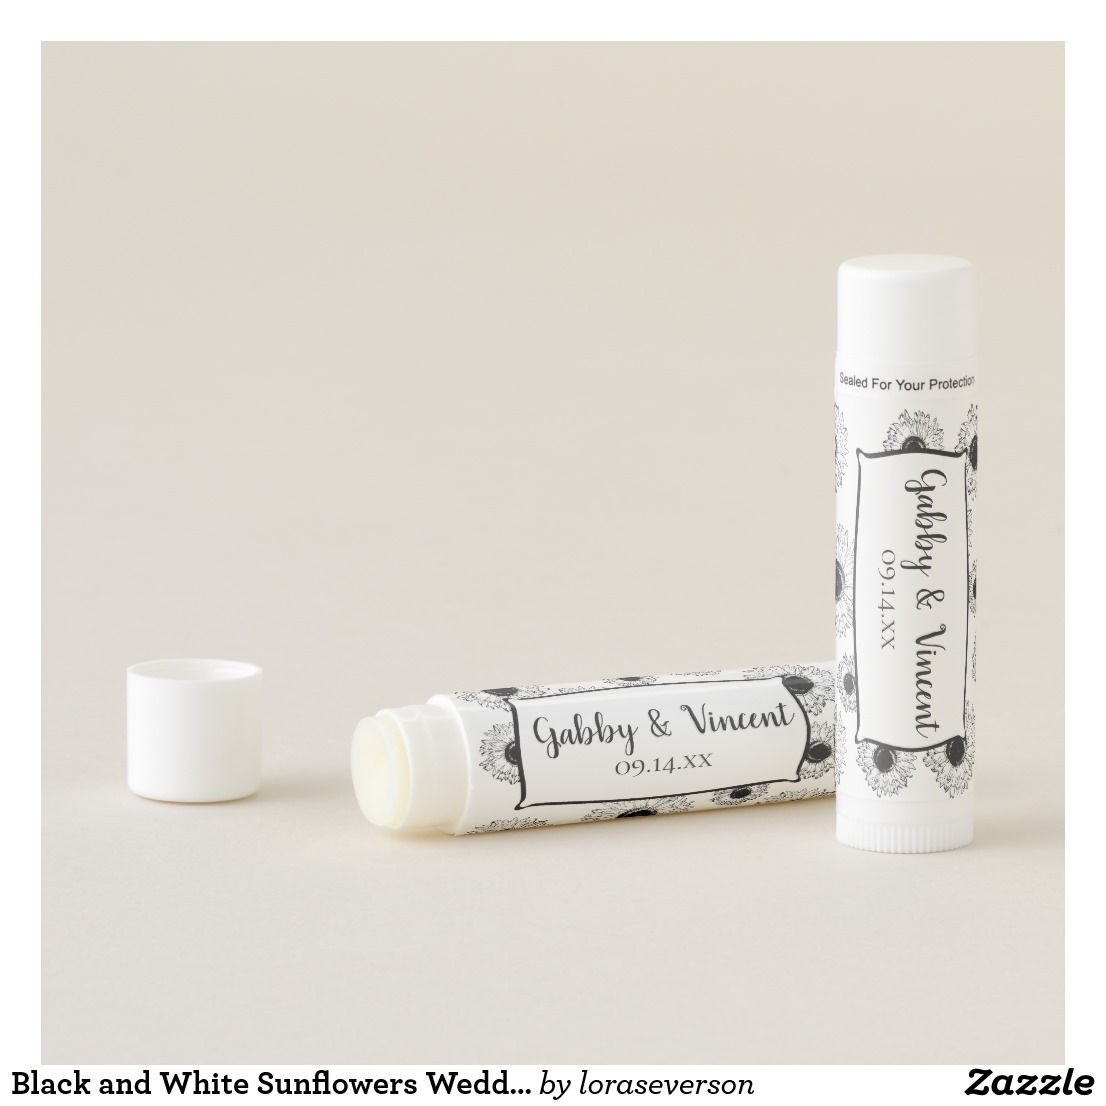 Black and White Sunflowers Wedding Favor Lip Balm Personalize and ...